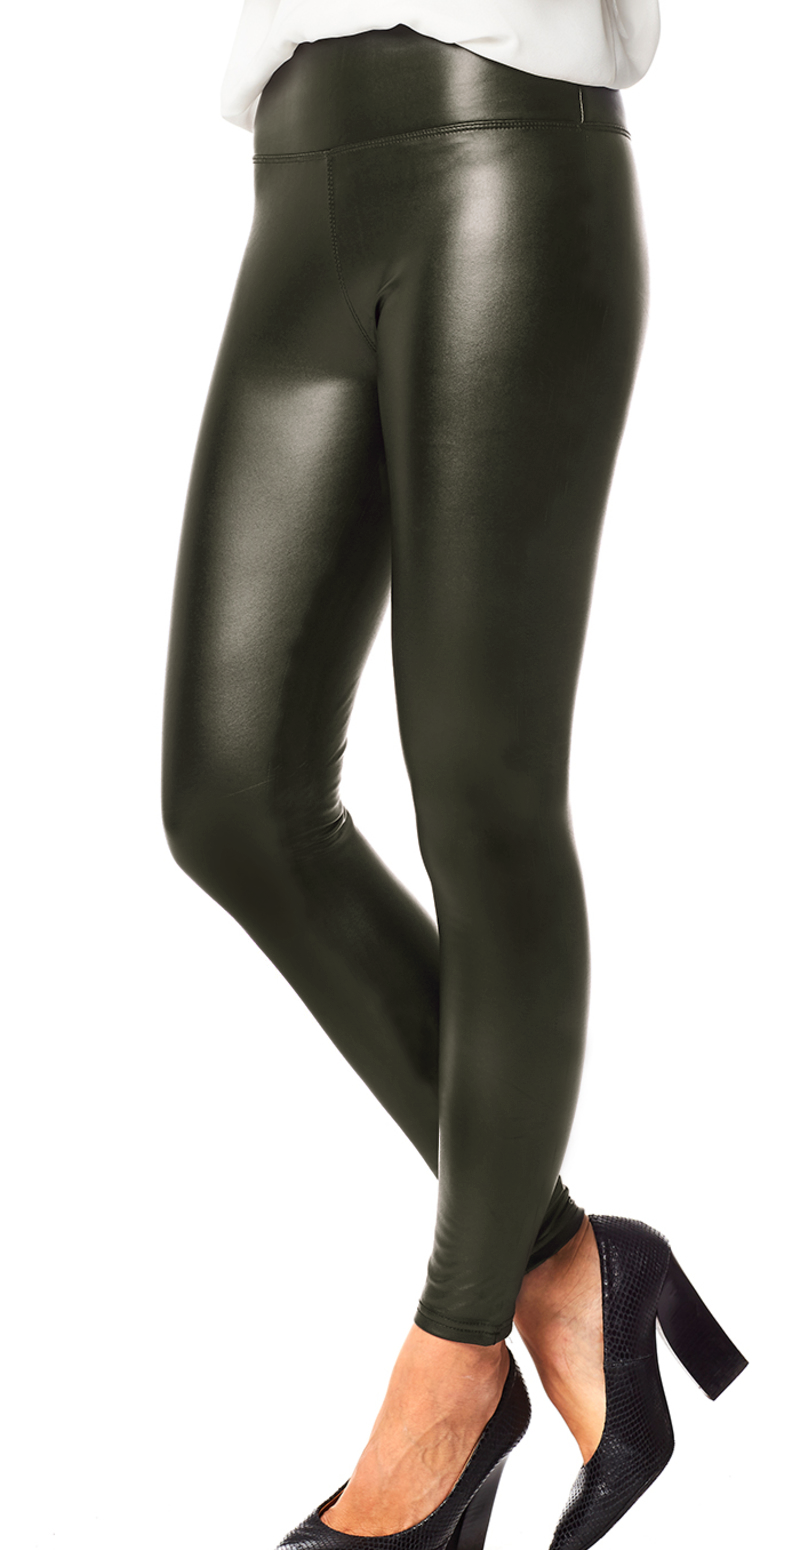 Army wetlook leggings